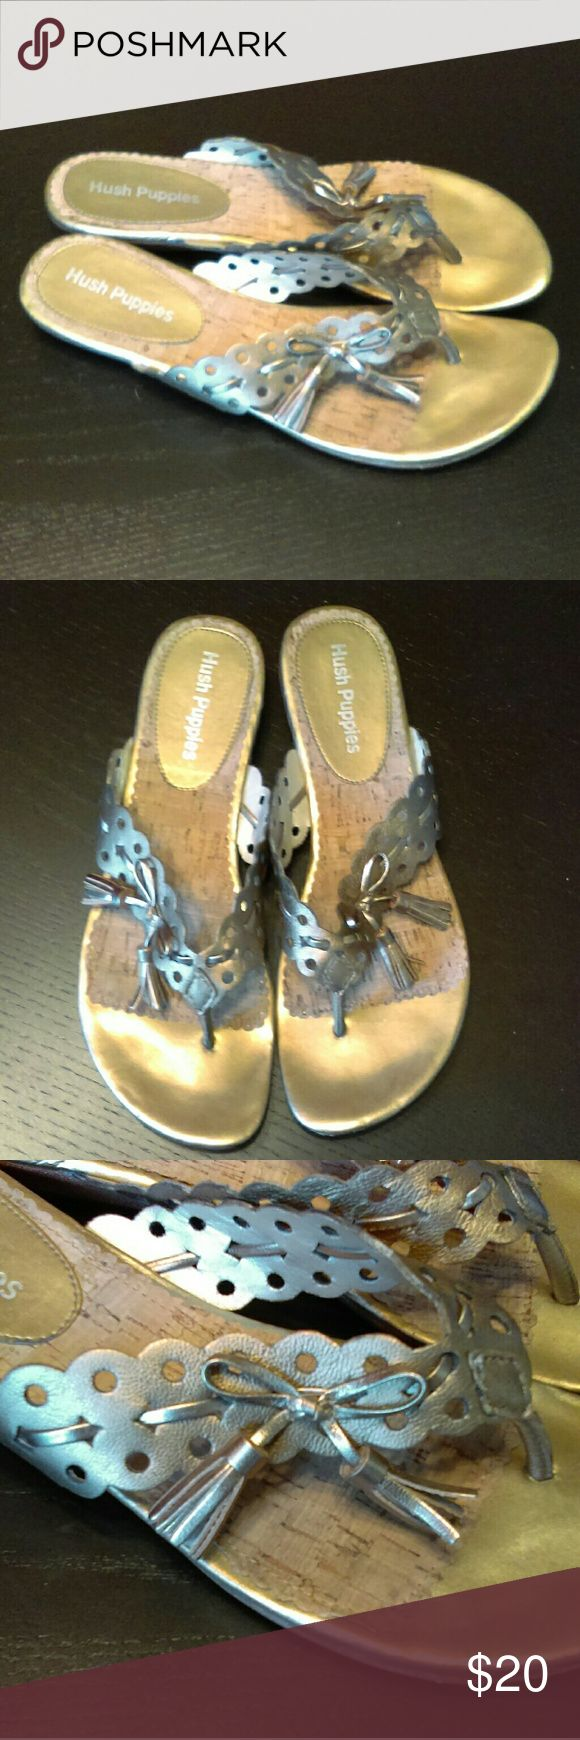 Hush Puppies like-new gold sandals Gold sandals with tassel bows, 3/4 inch heel. Hush Puppies Shoes Sandals